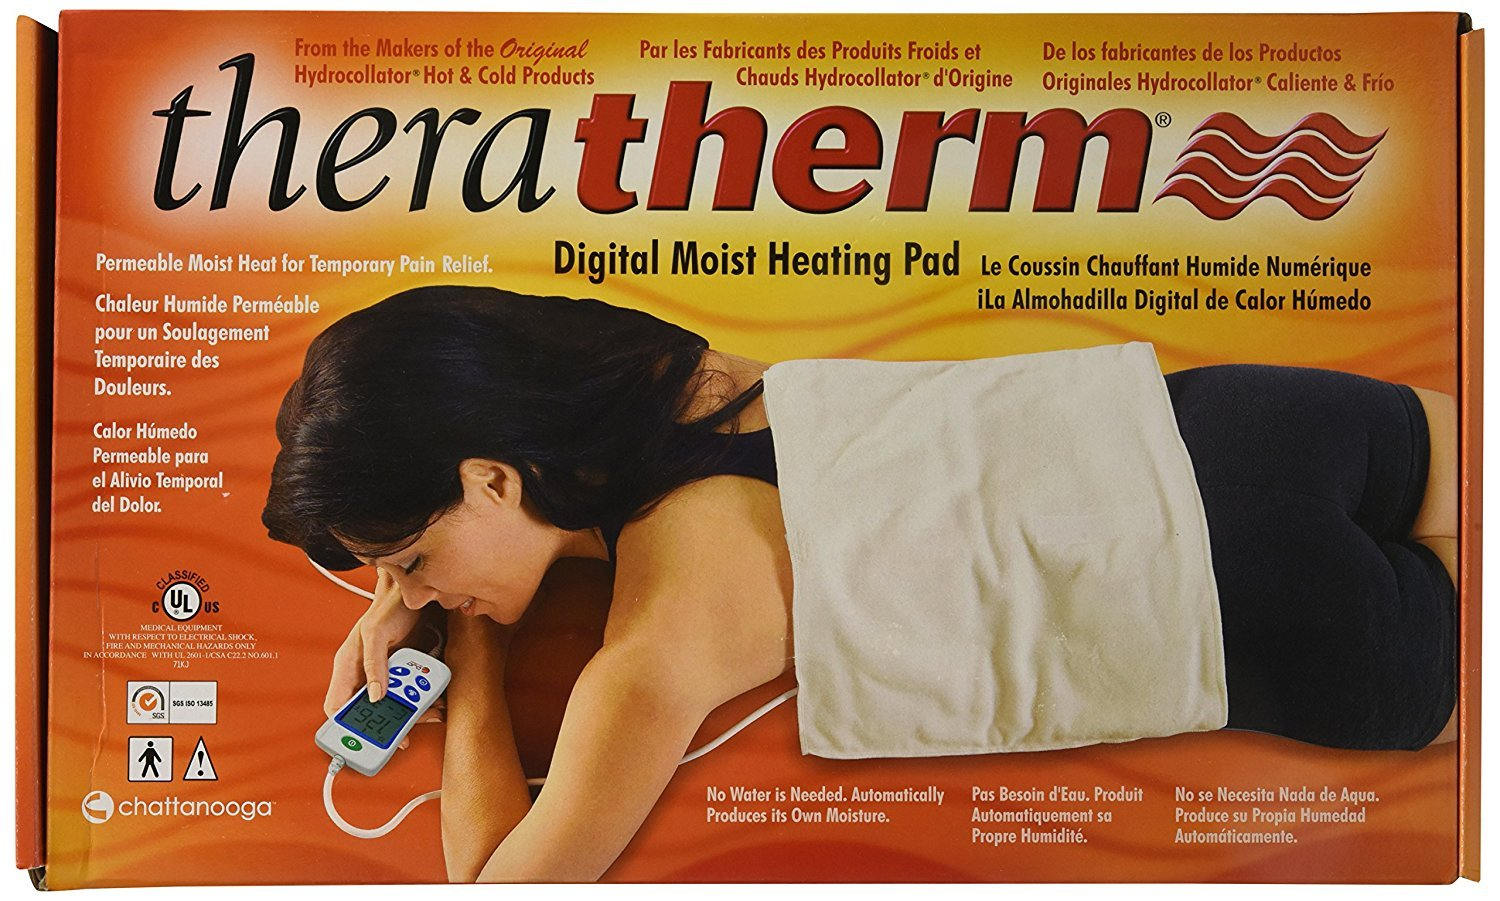 Chattanooga Theratherm Digital Moist Heating Pad, Large/Standard (14'' x 27'')